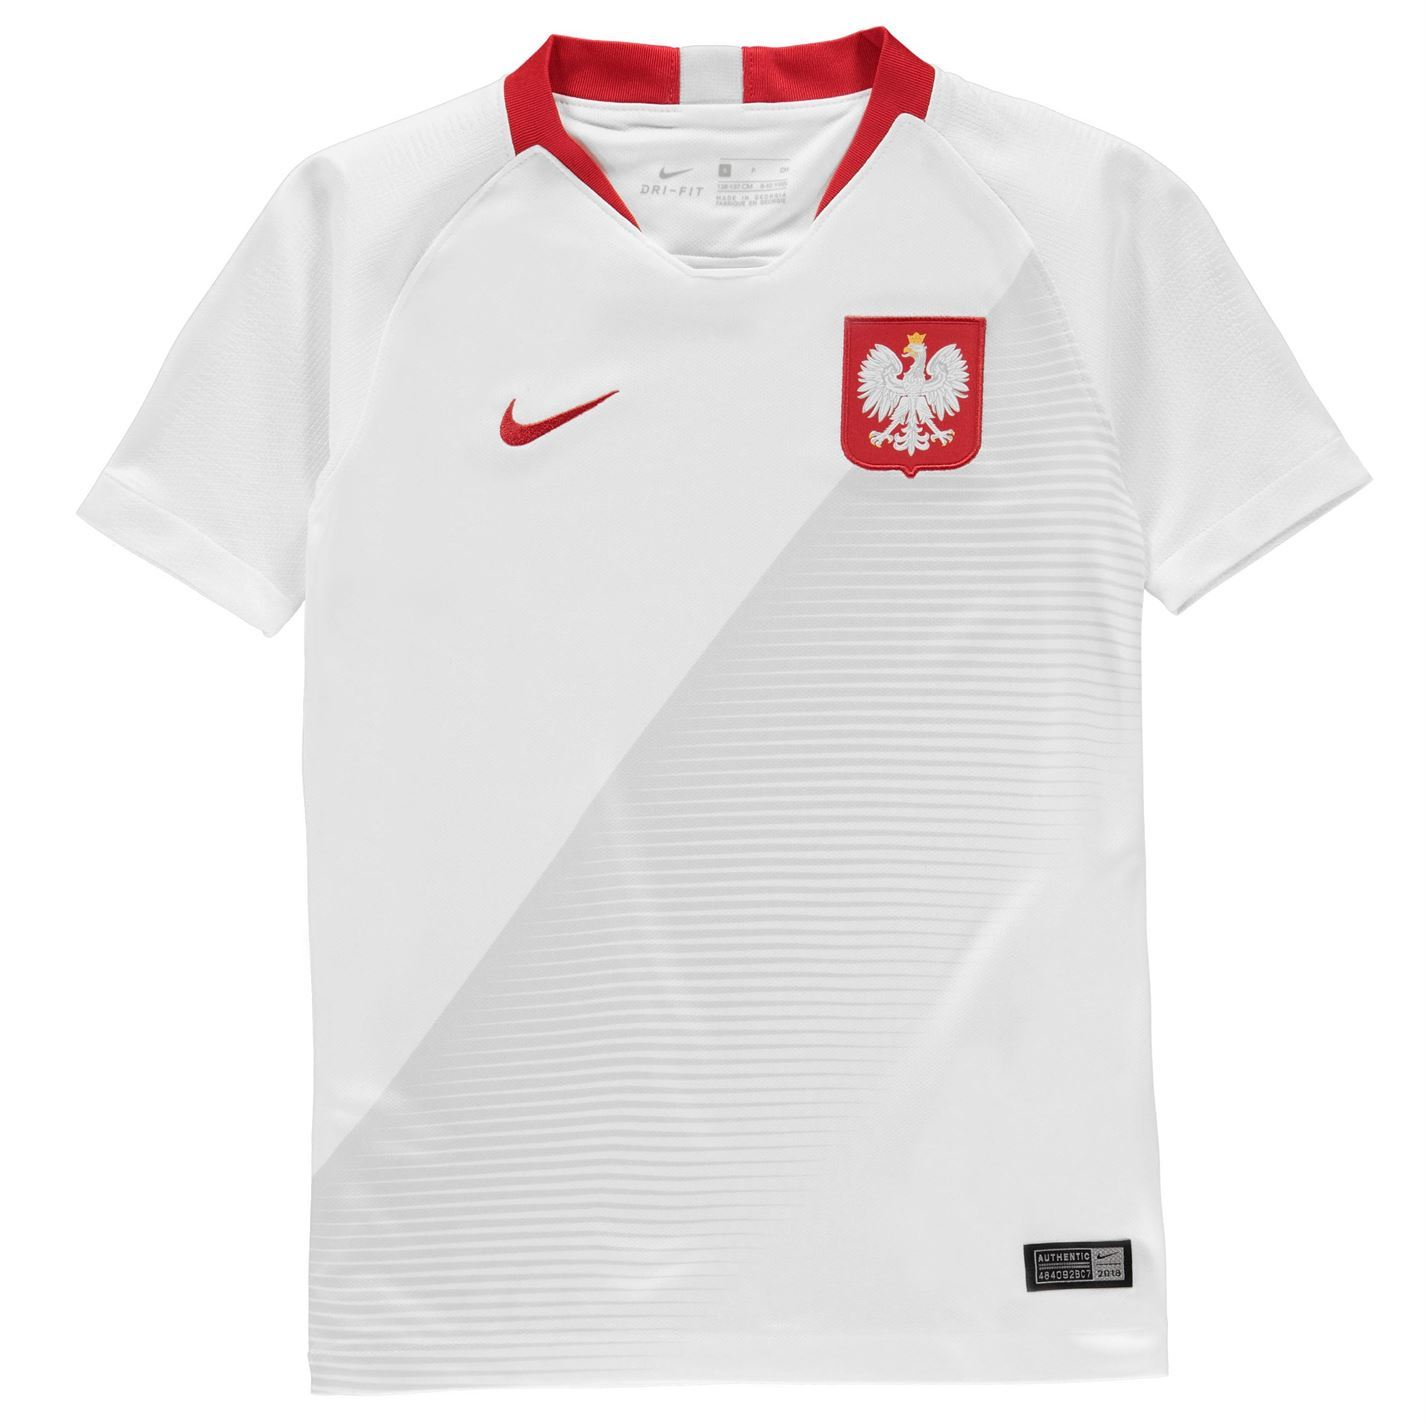 sale retailer cf620 47f1f Details about Nike Poland Home Jersey 2018 Juniors White Football Soccer  Top Shirt Strip